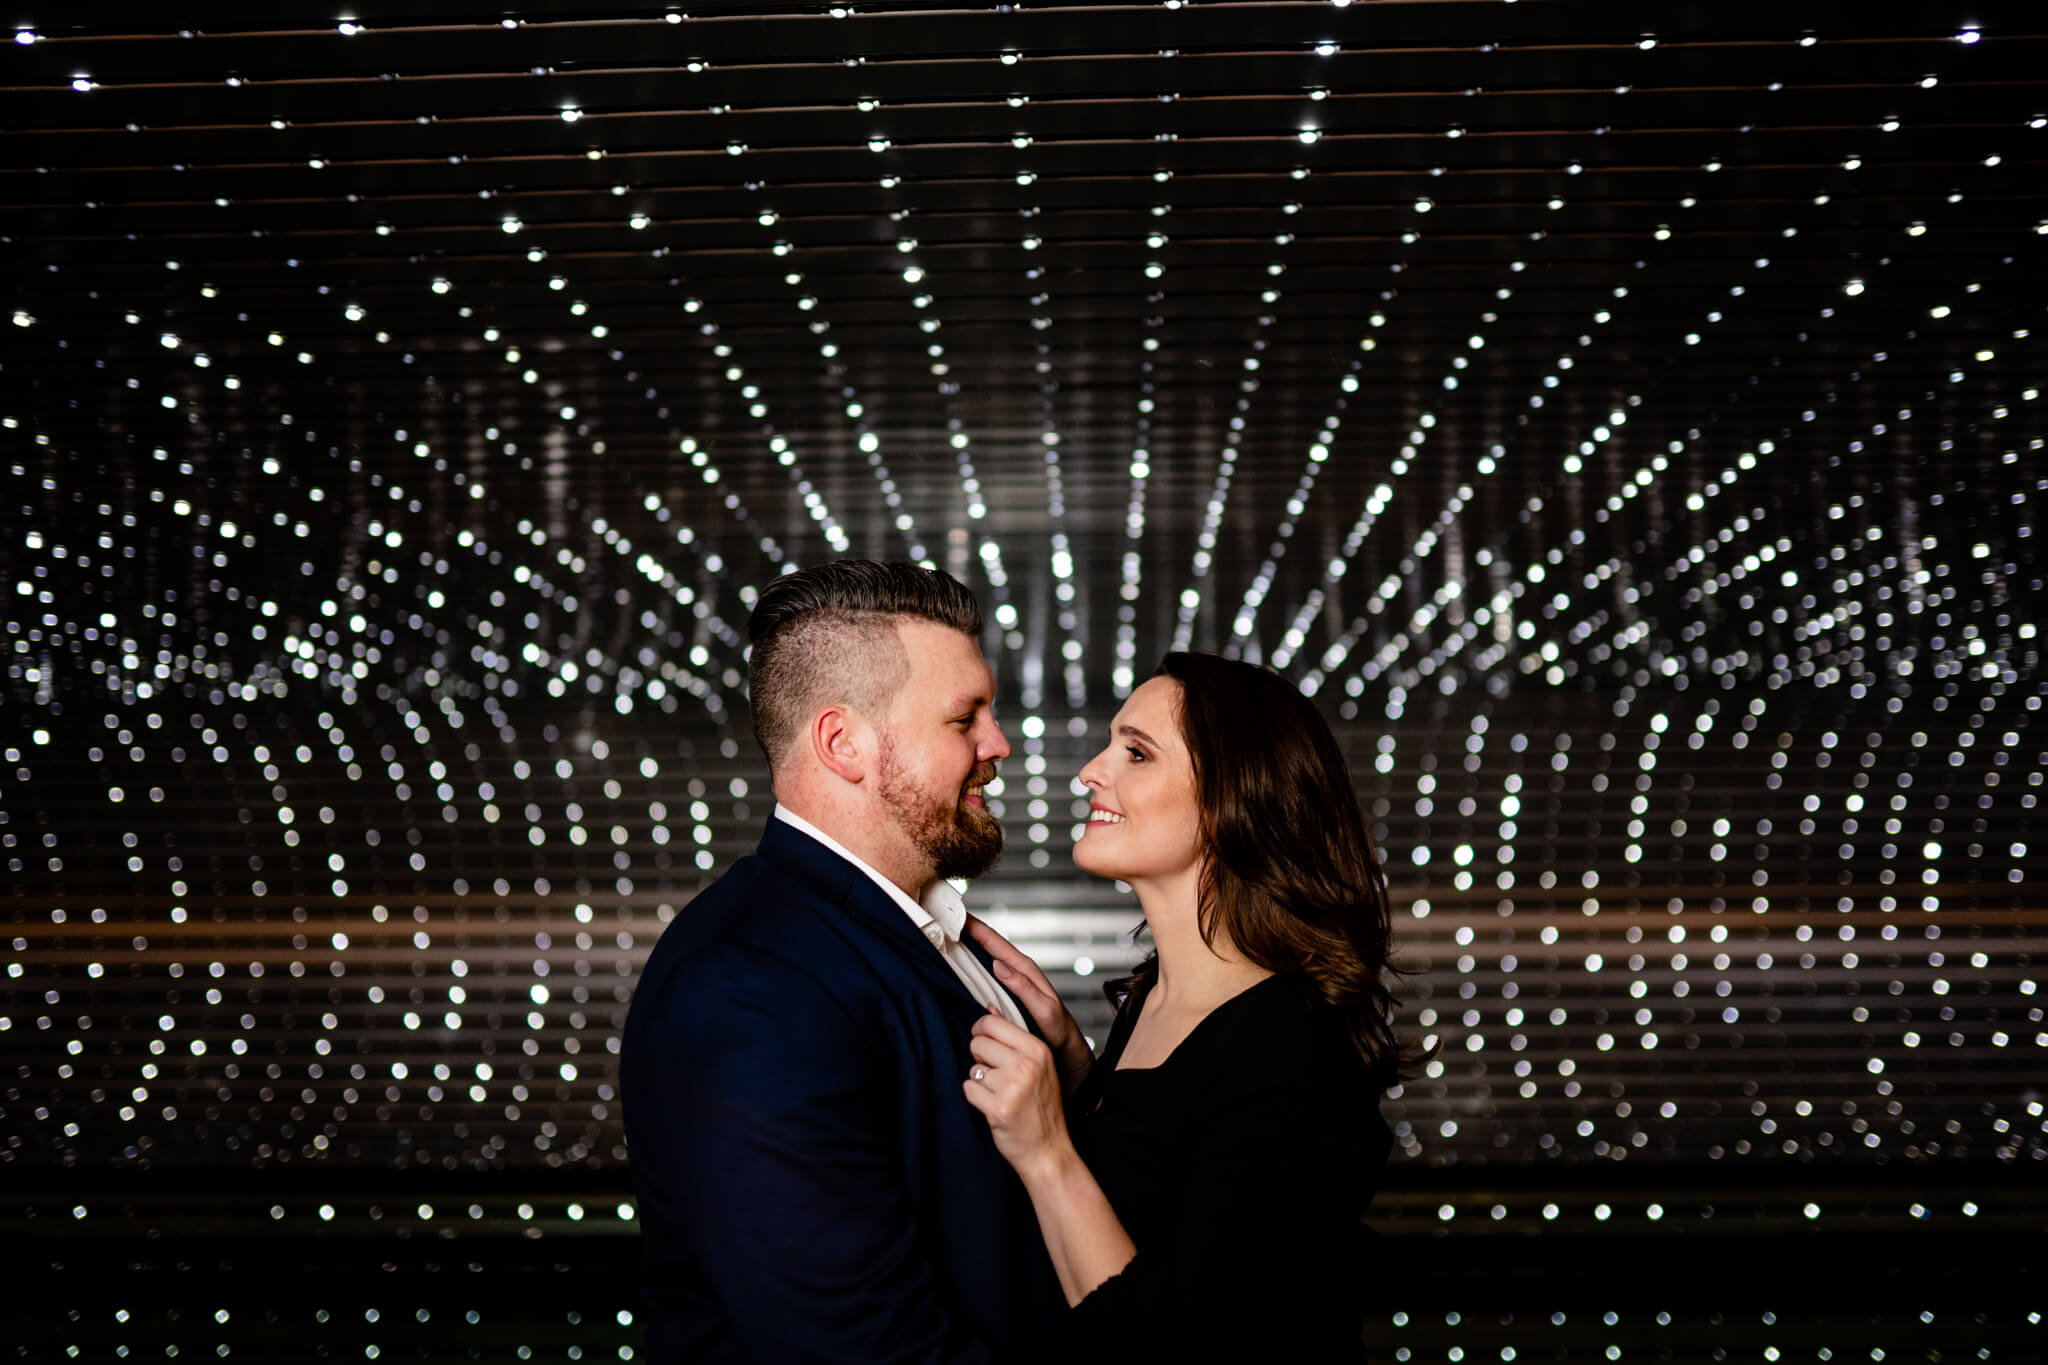 National Gallery East Engagement Session DC Engaged Art Museum Engagement Winter Engagement Session-7.jpg